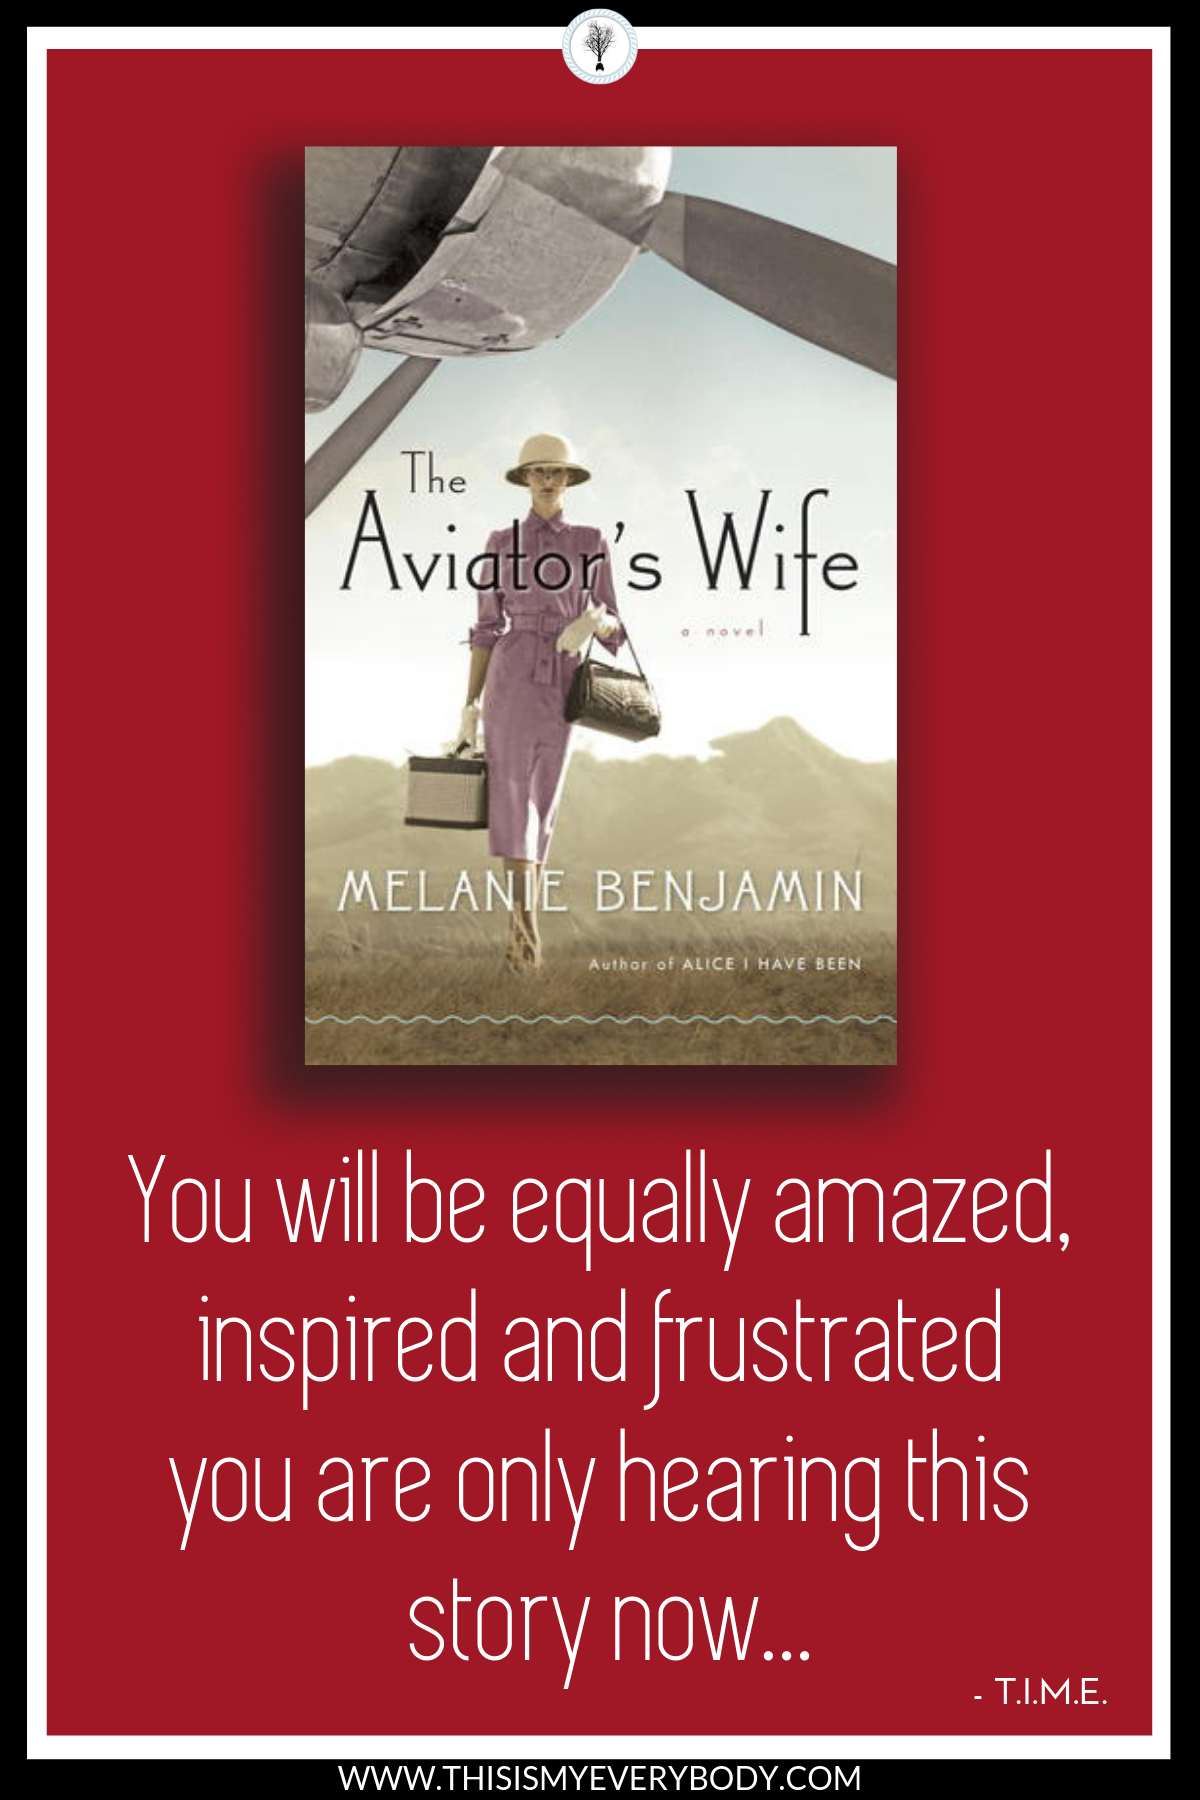 Anne Morrow Lindbergh is a total warrior! You will be equally amazed, inspired and frustrated you are only hearing about this story now… The Aviator's Wife by Melanie Benjamin